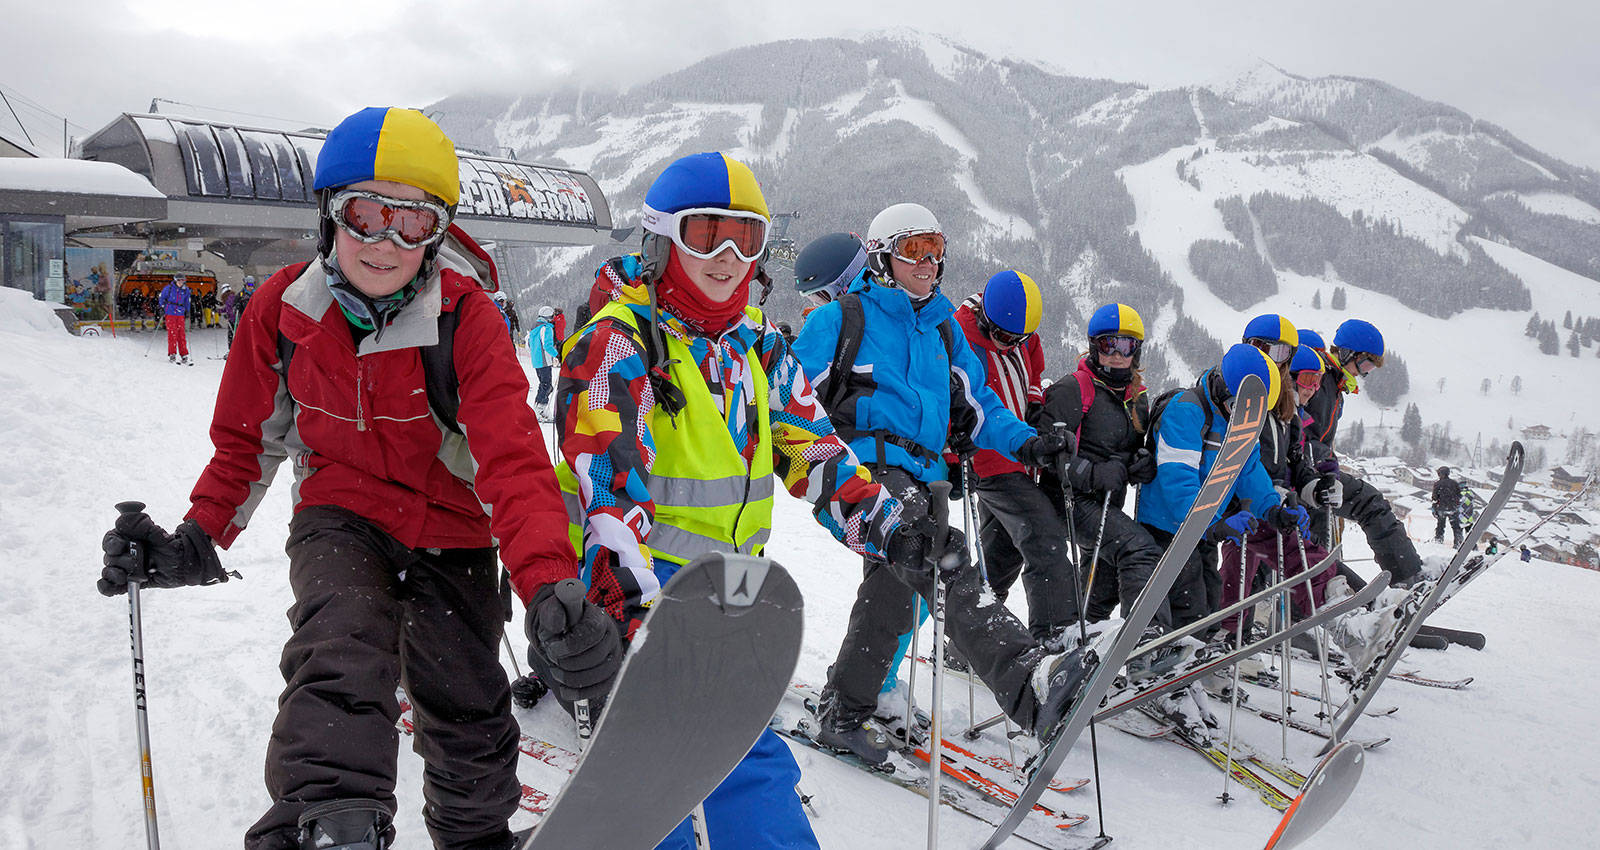 Secondary School trip skiing